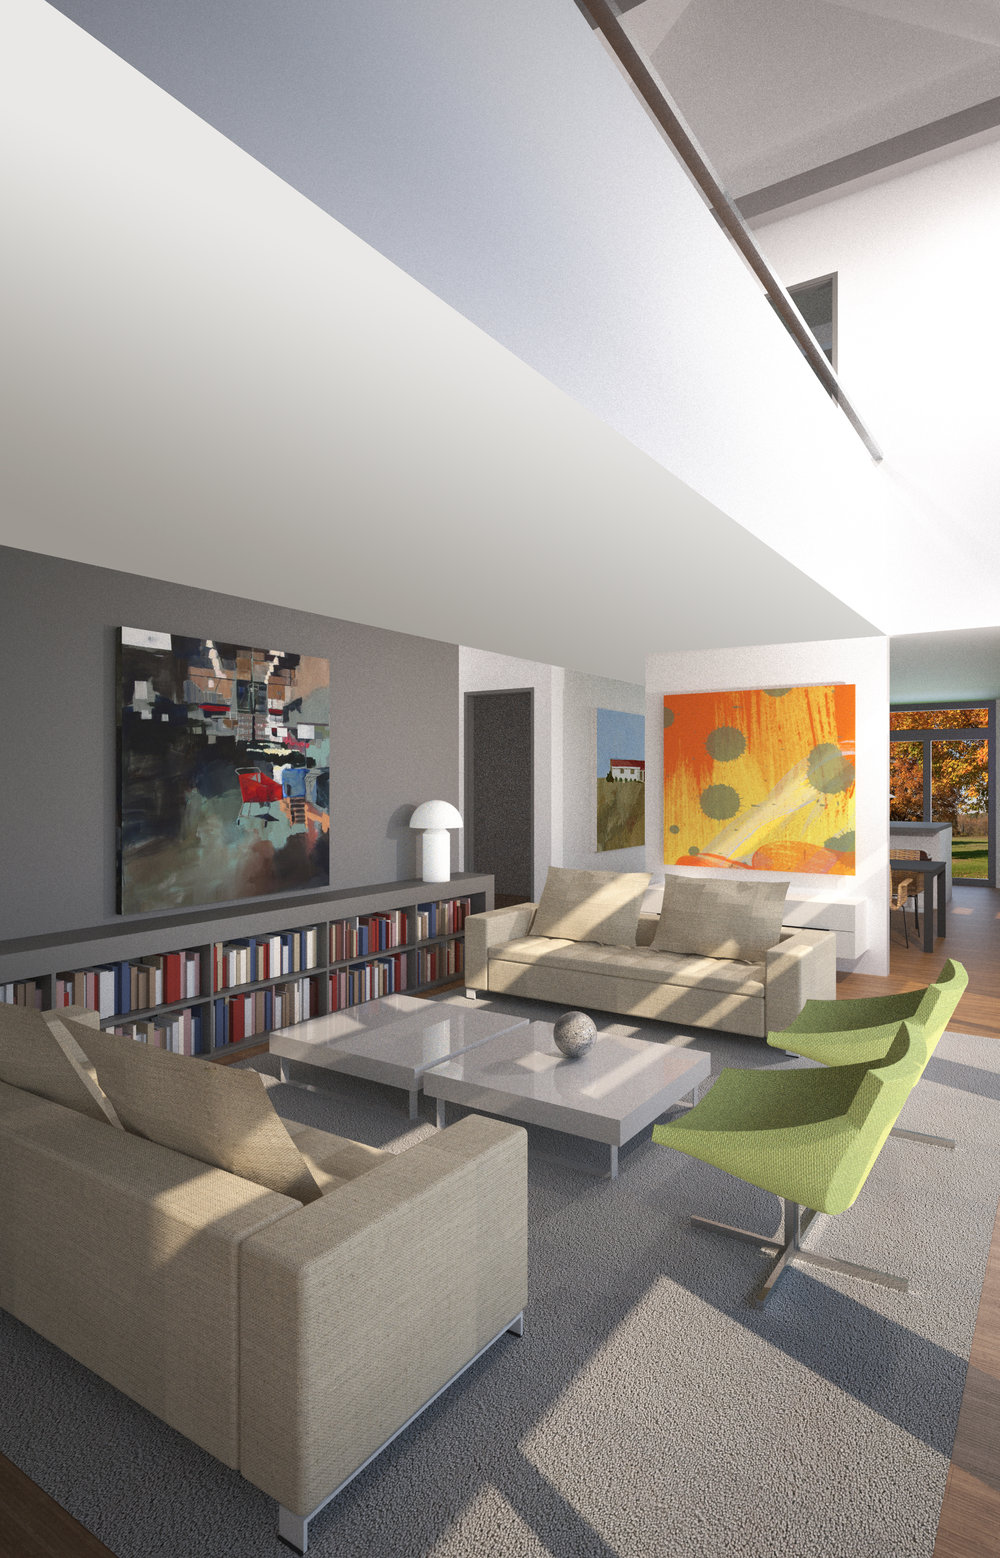 Large living room with colorful art and low bookshelves.